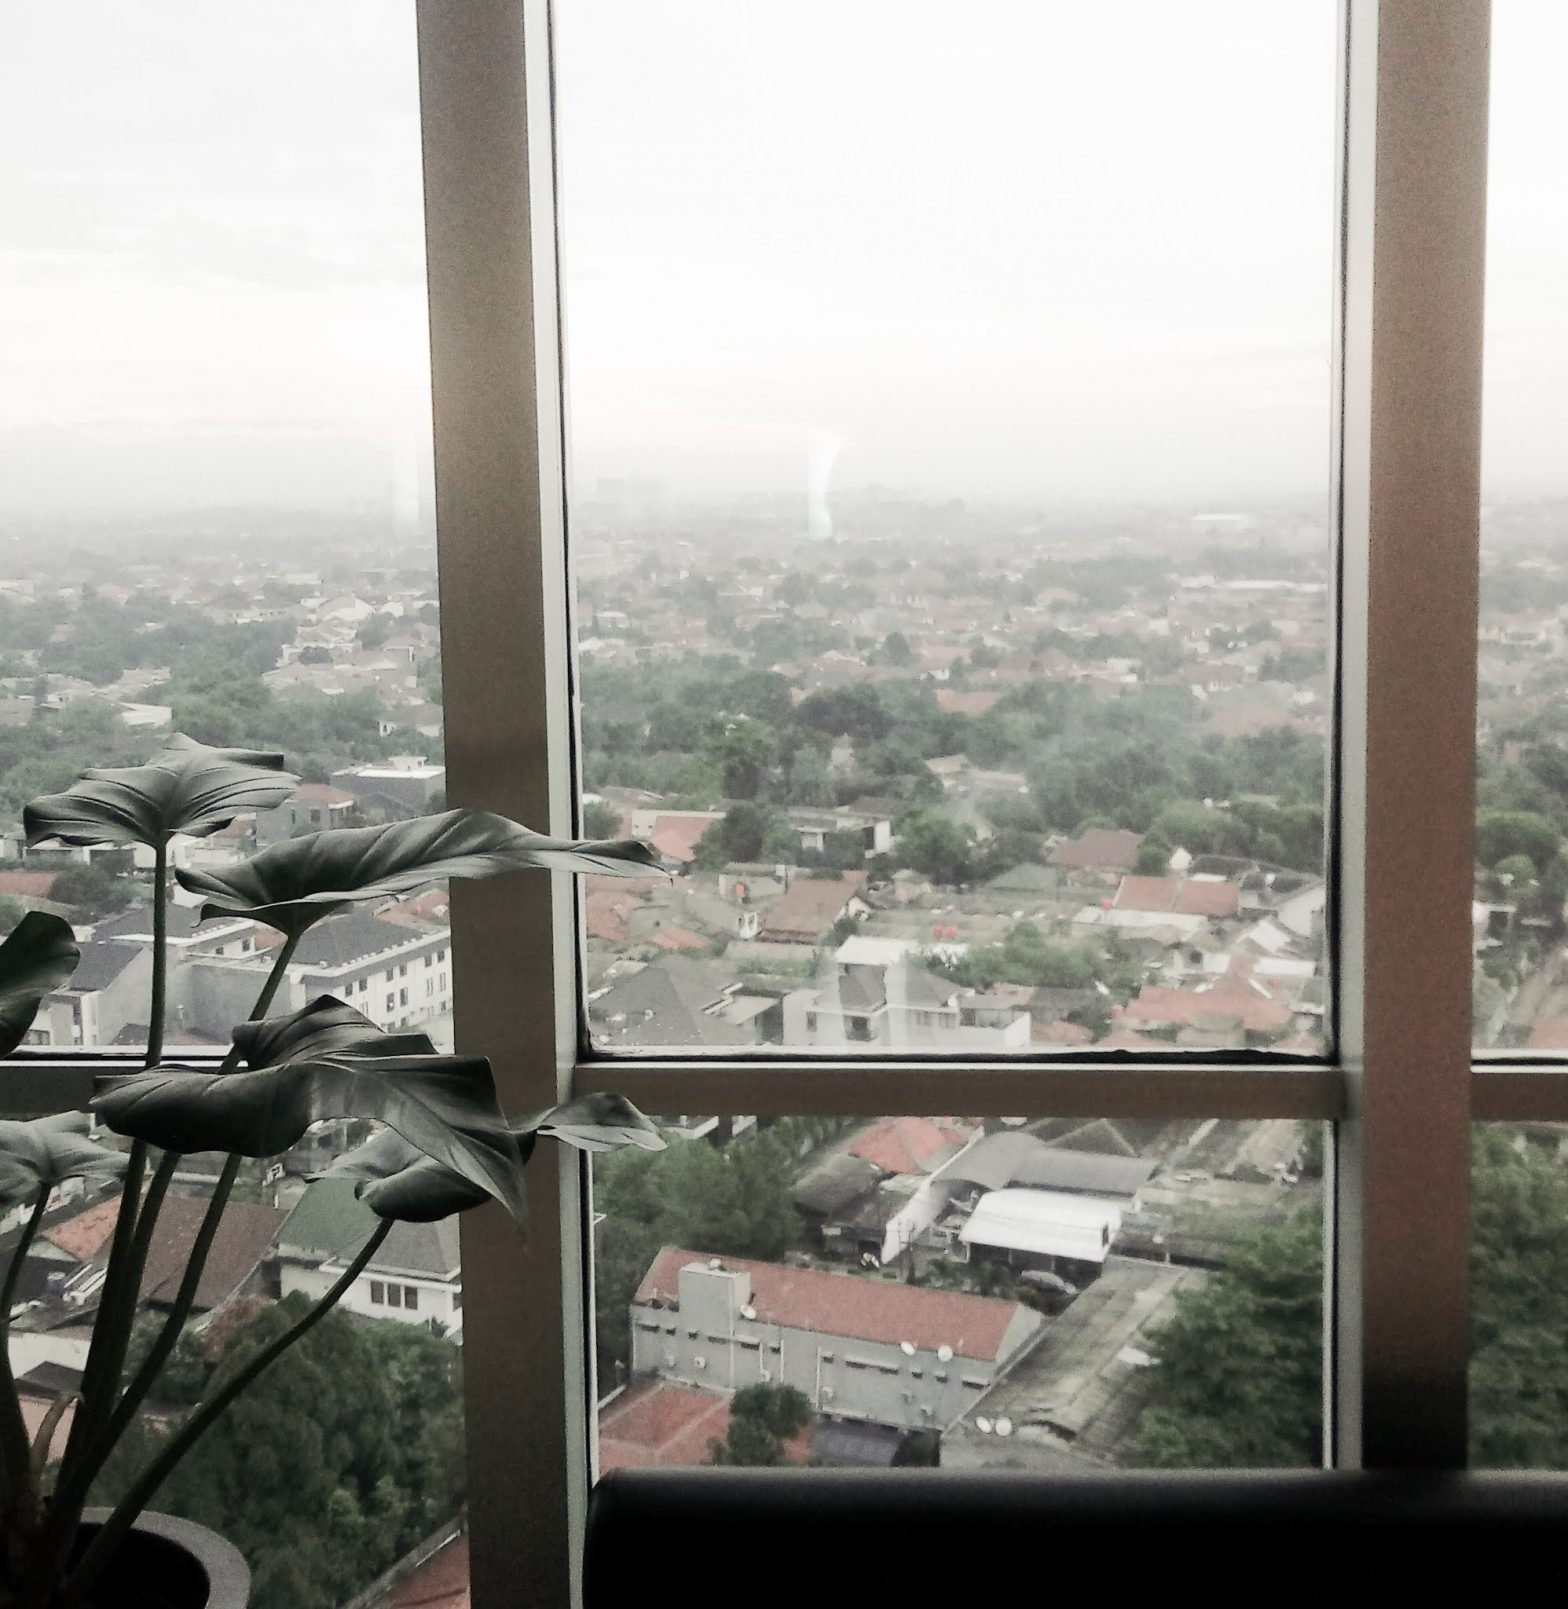 Jakarta from the window of my office